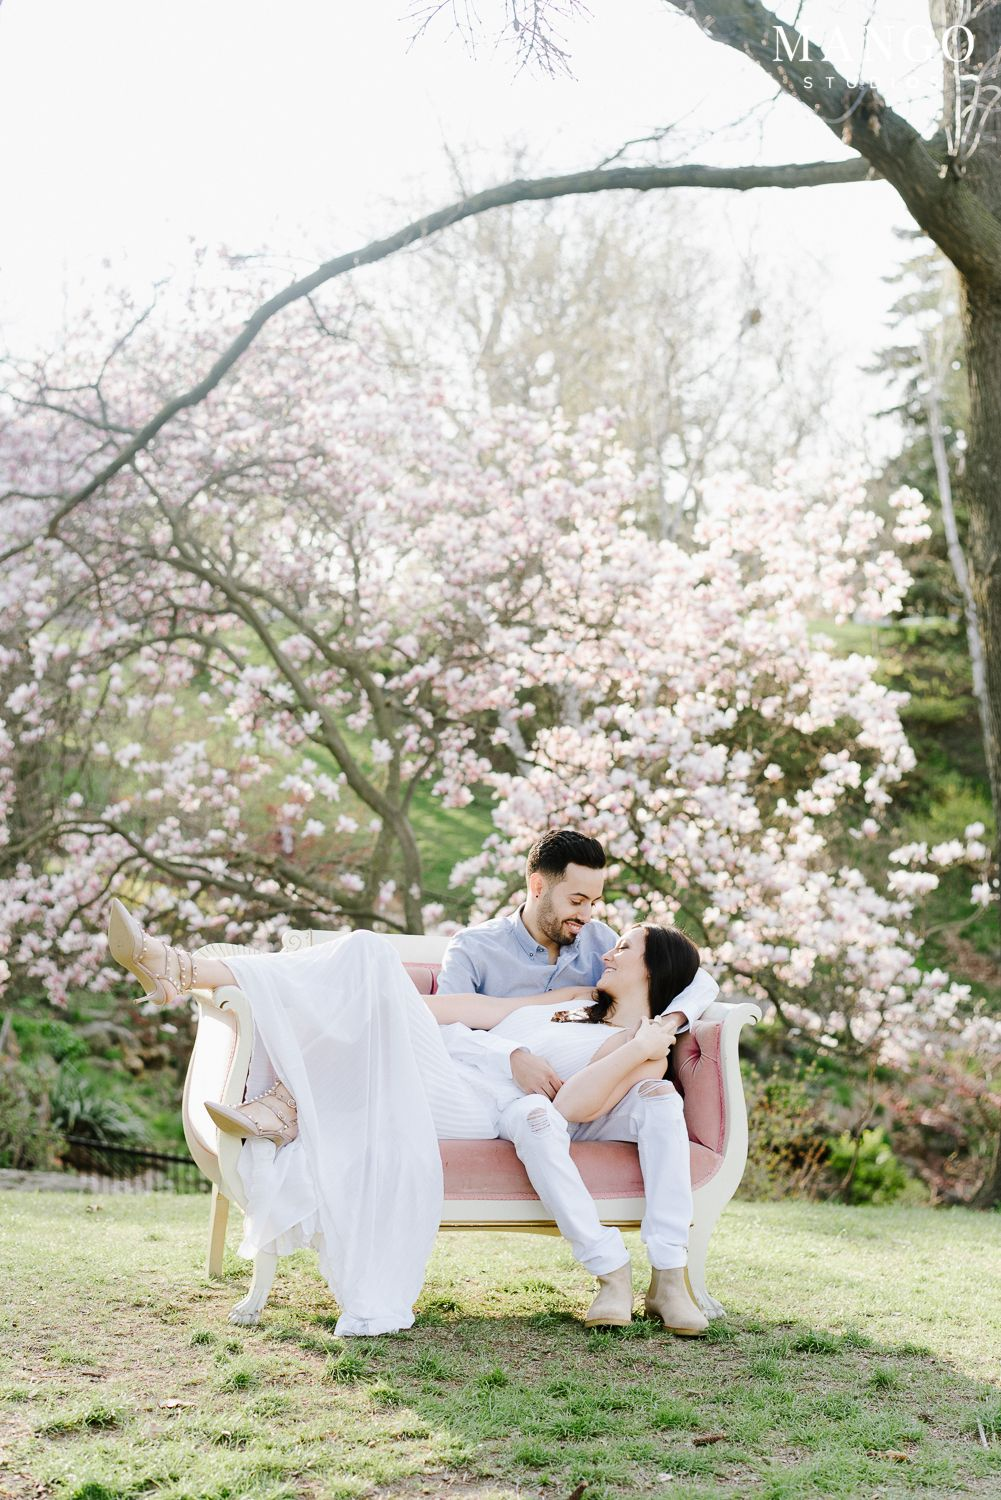 The Blossoms Really Make Romance Right The Elegance And The Way The Trees Frame Outdoor Engagement Photos Toronto Wedding Photographer Wedding Photography